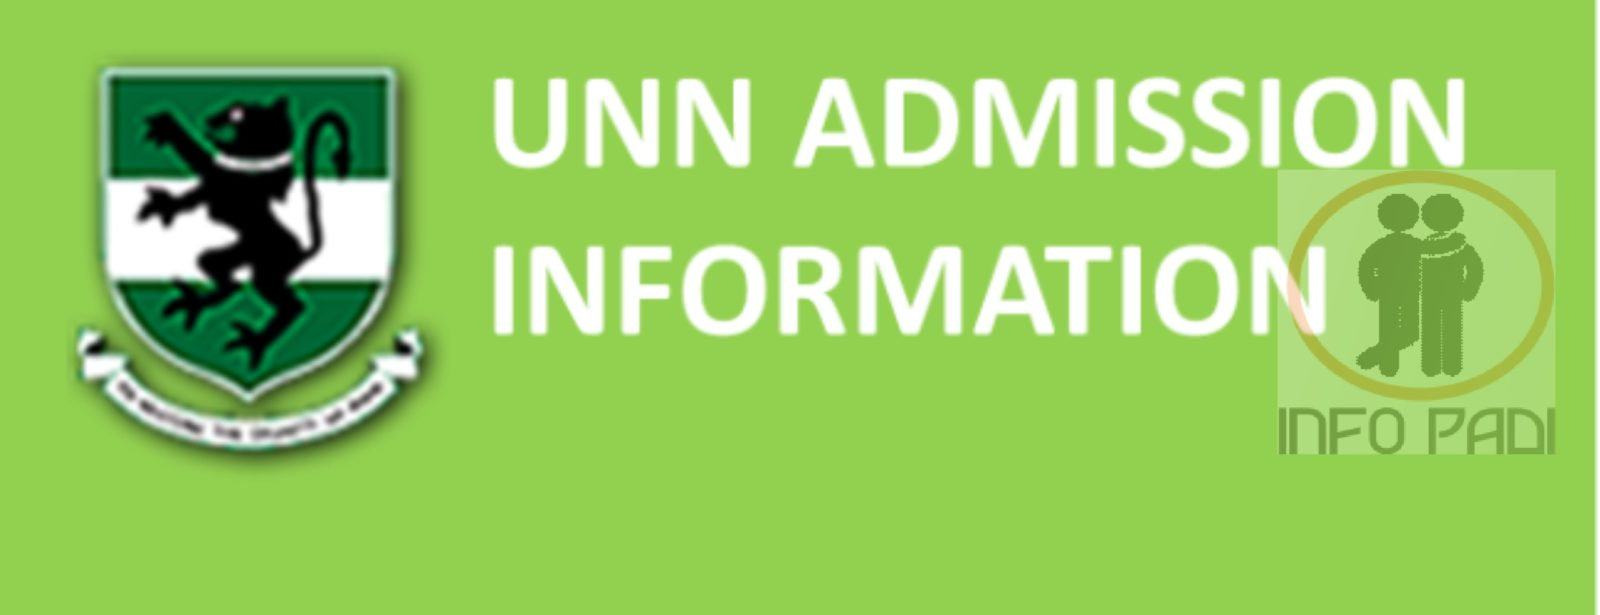 University of Nigeria (UNN) Post UTME 2018/2019 Admission Screening form